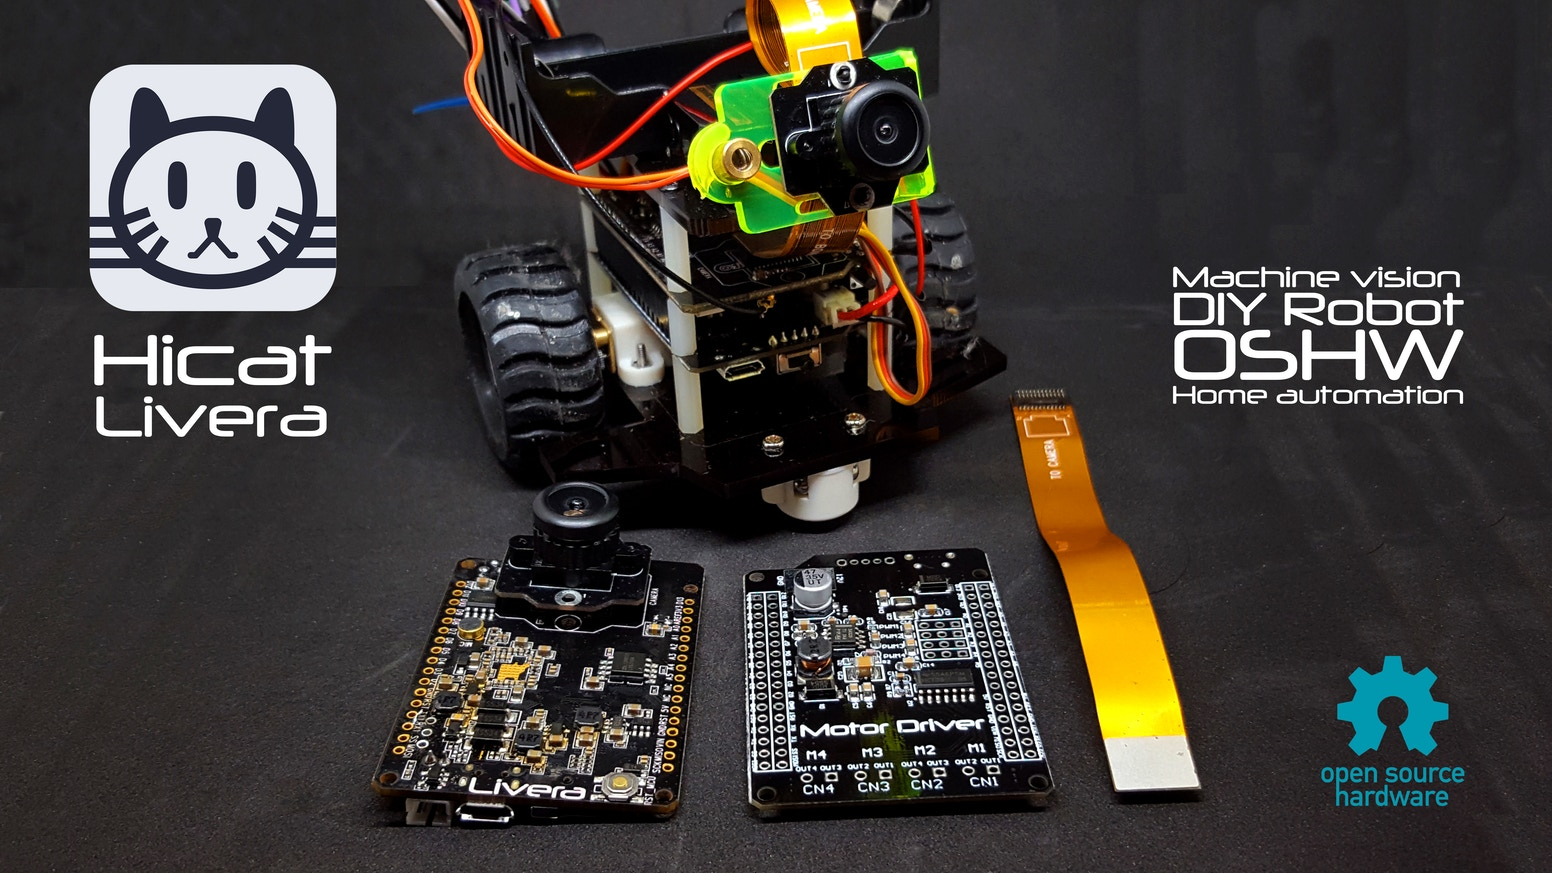 Hicatlivera Start Making Your First Machine Vision Robot By Team Block Diagram Of Metal Detector Robotic Vehicle Livera Aims To Bring Low Cost Features Let More People Diy Their Own